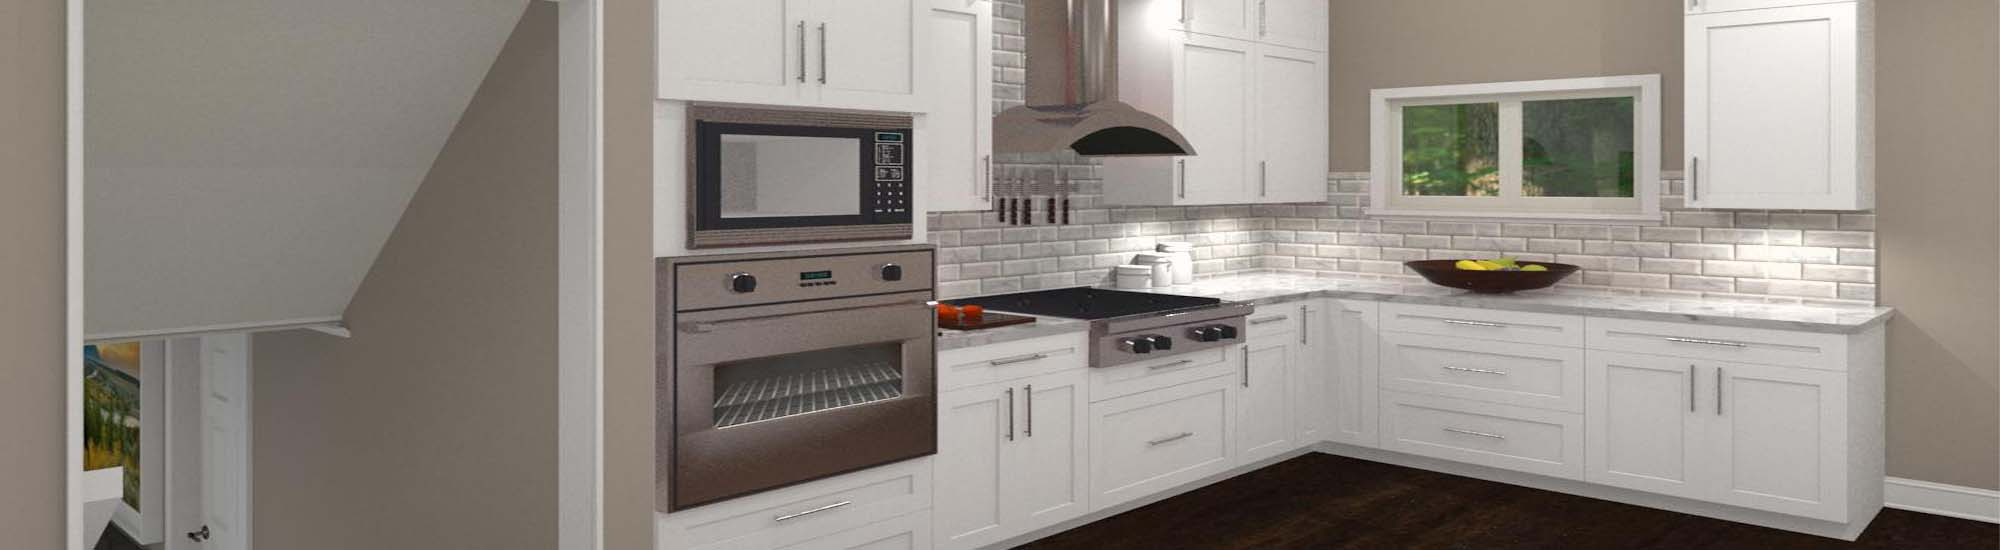 kitchen-cad-3-design-build-pros